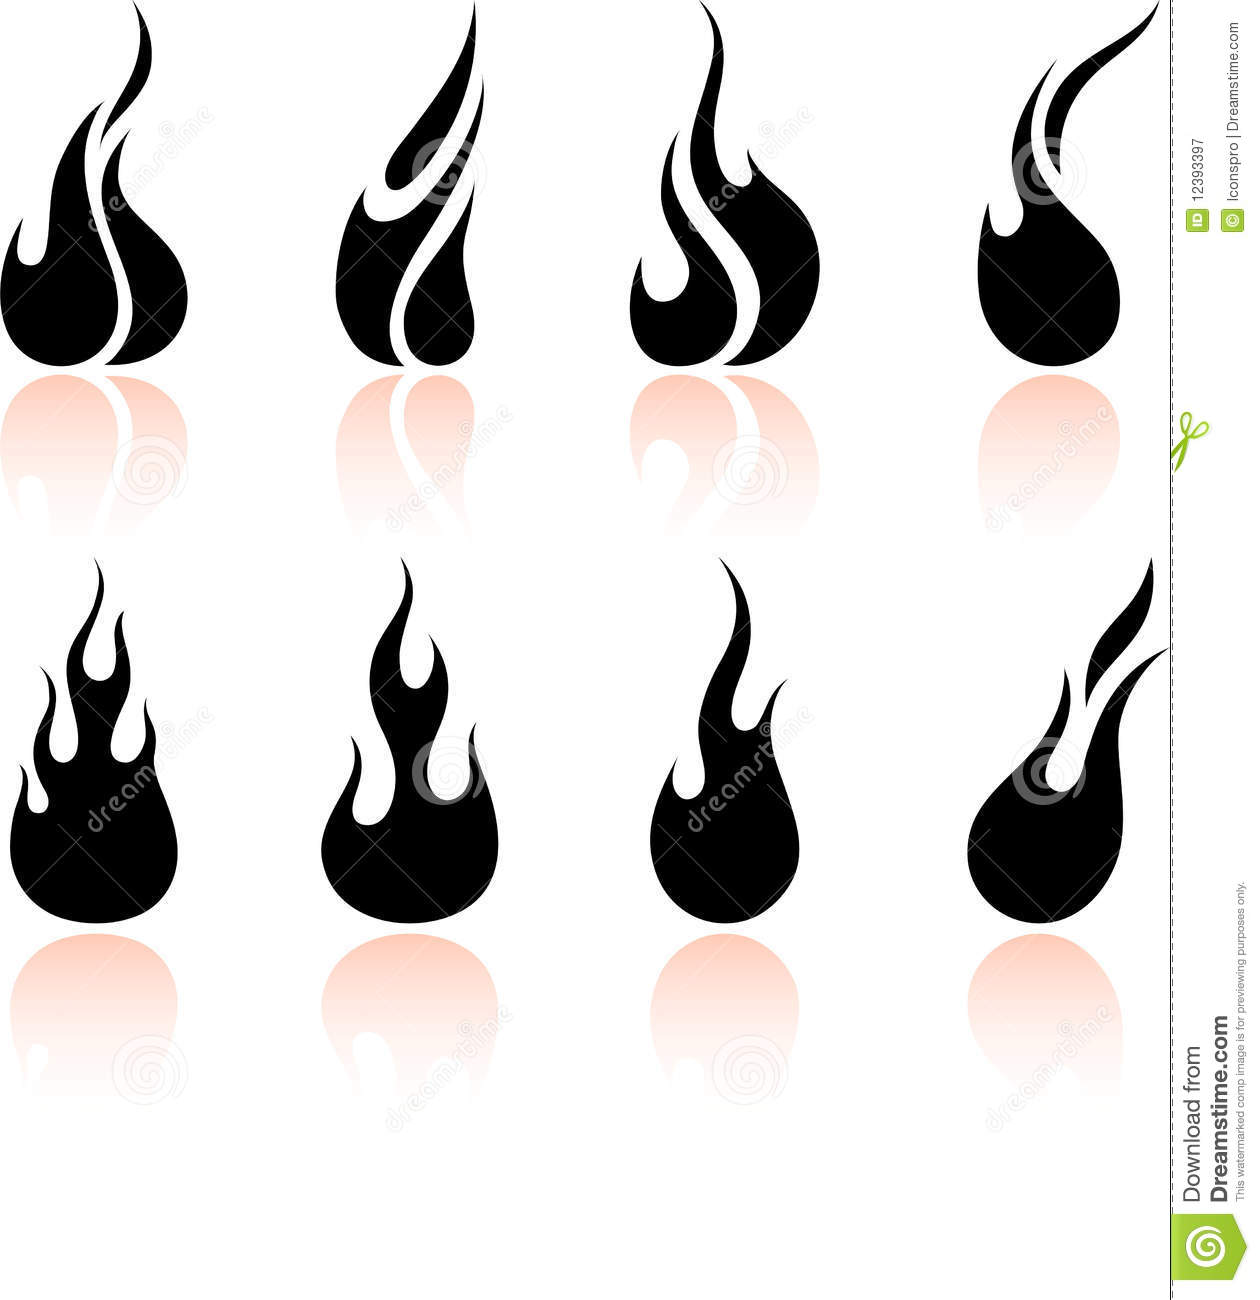 1260x1300 Fire Clipart Black And White